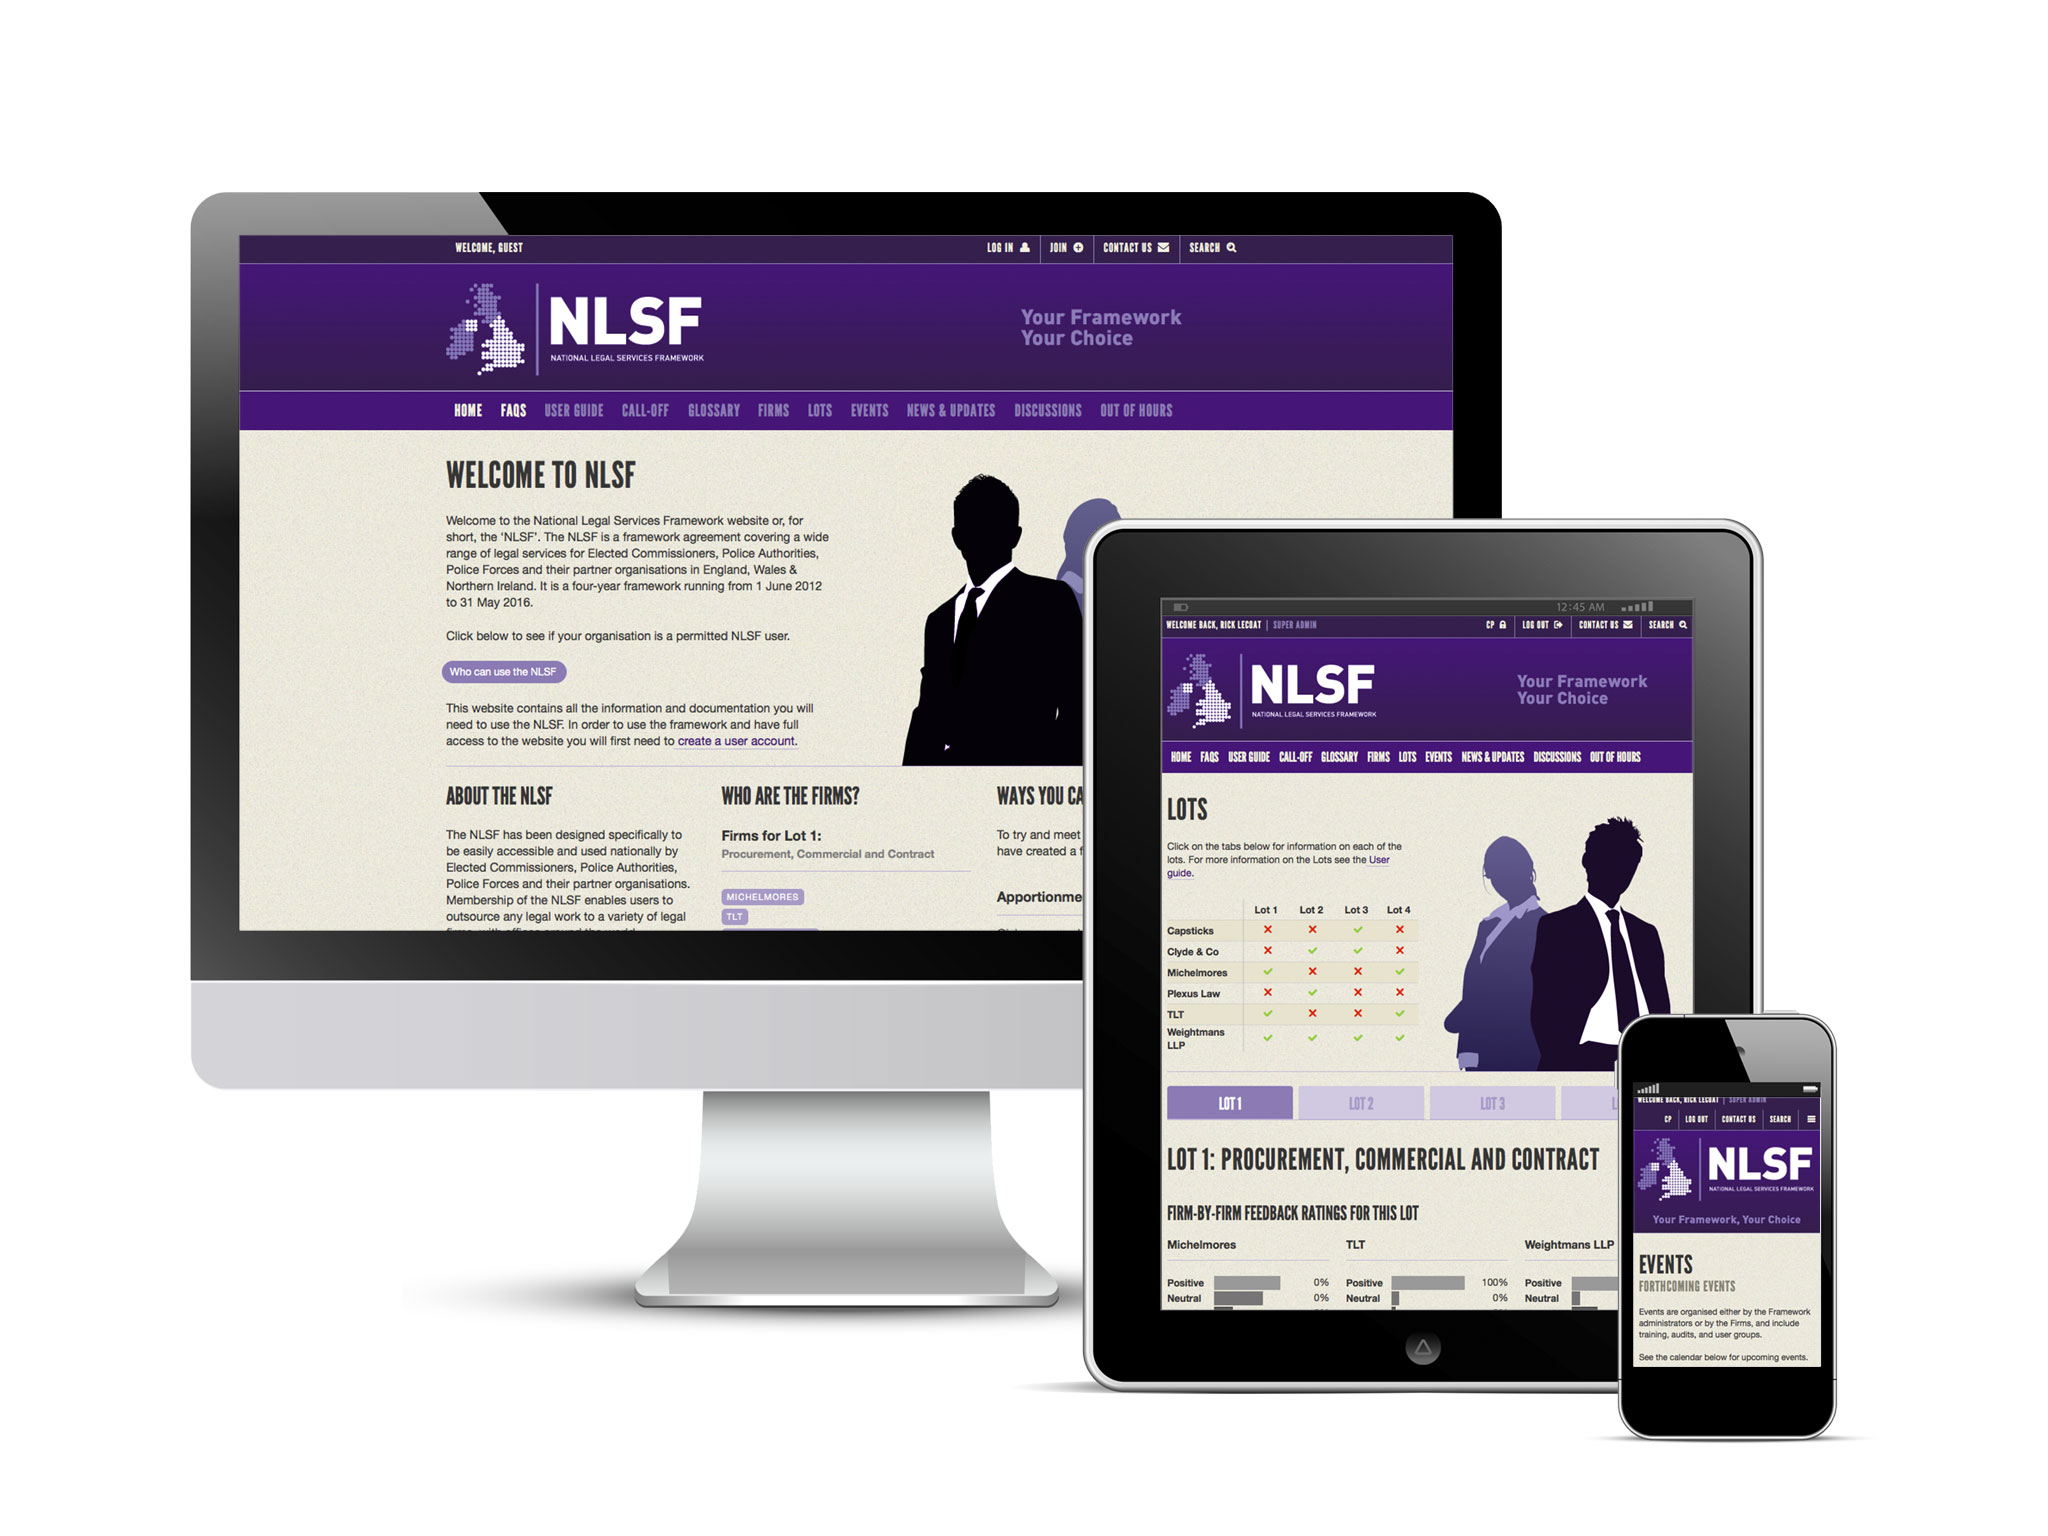 NLSF website displayed across multiple devices